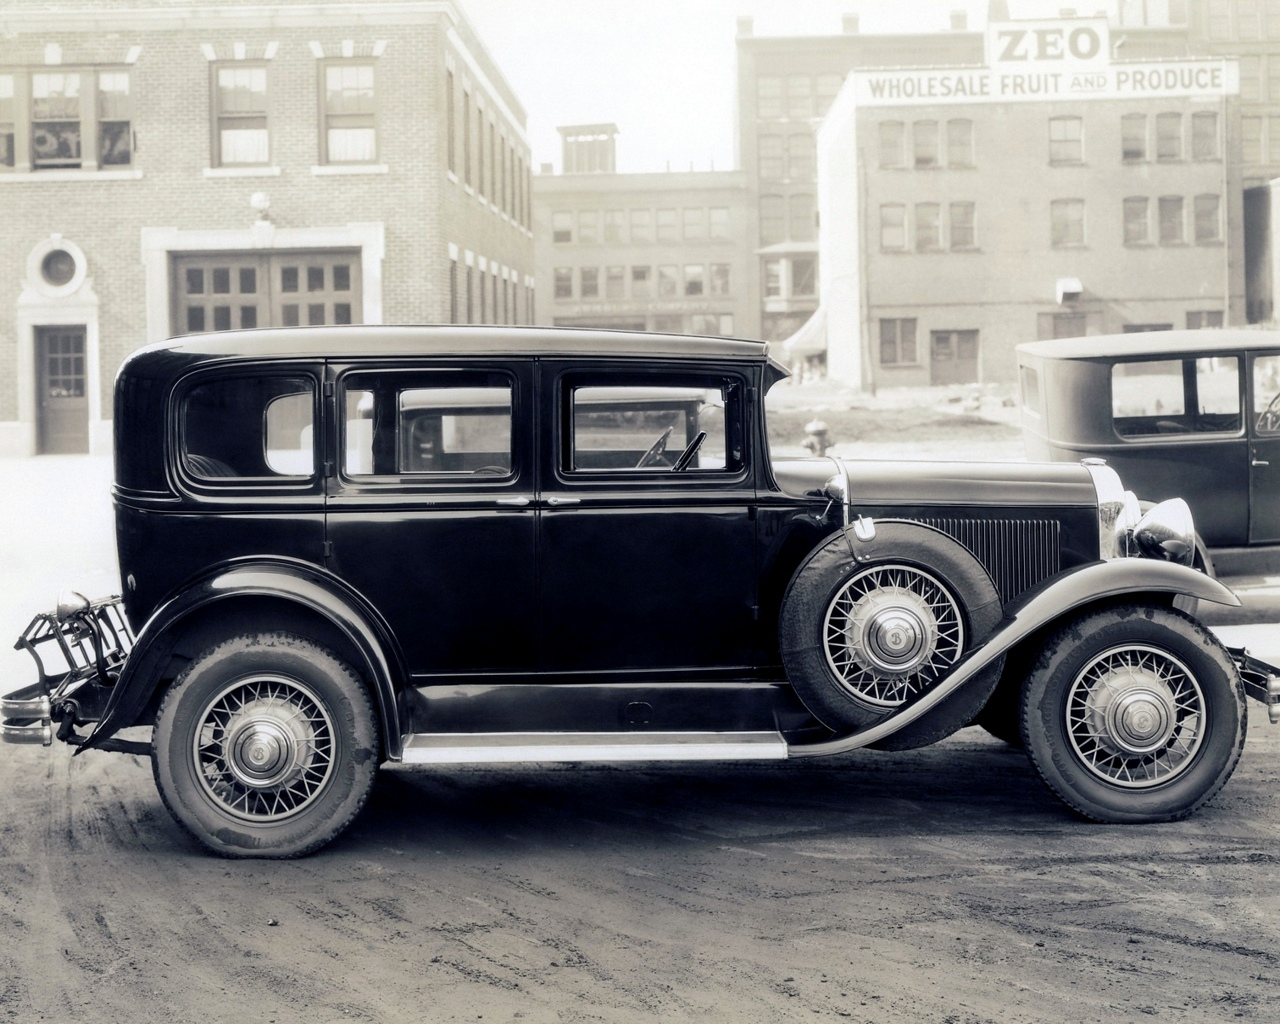 All Wallpapers | Wallpapers 2012: American Classic Cars Wallpapers 2013